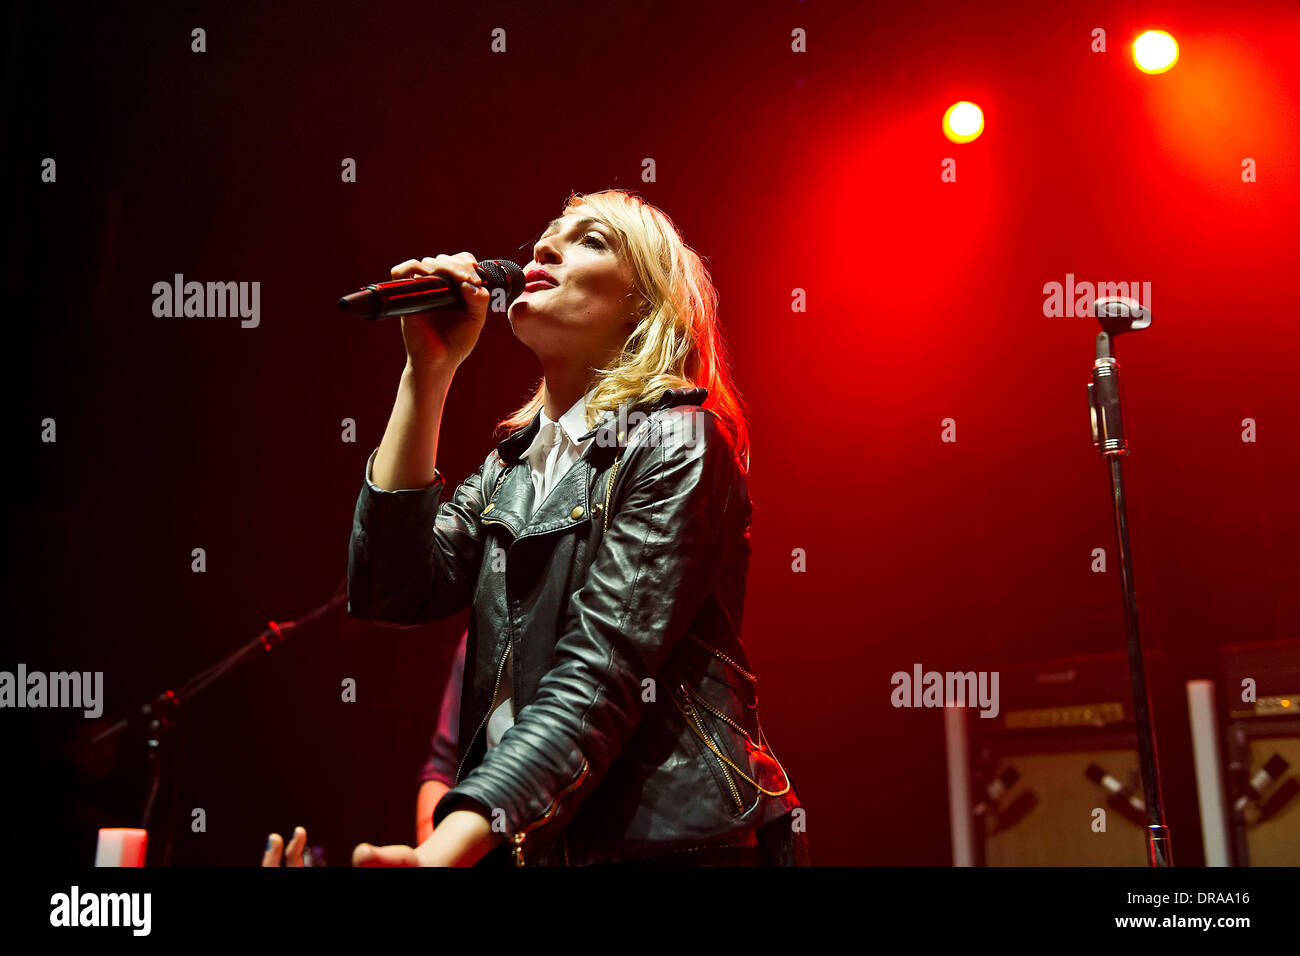 Emily Haines of indie rock band Metric performing live at Shepherds Bush Empire London, England - 02.07.12 - Stock Image